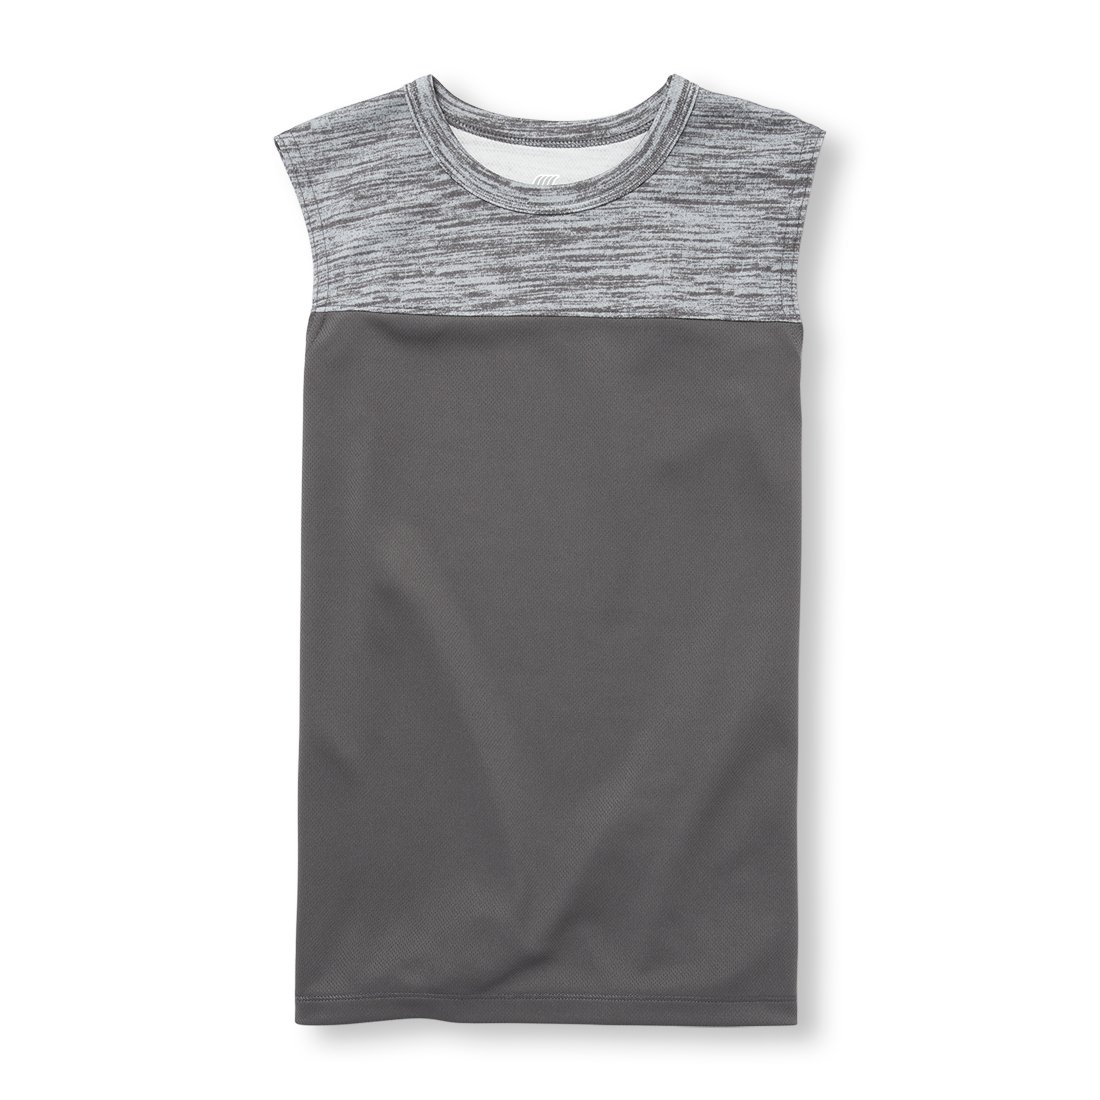 The Children's Place Big Boys' Short Sleeve Fashion T-Shirt, Sharkskin 97486, M (7/8) by The Children's Place (Image #1)